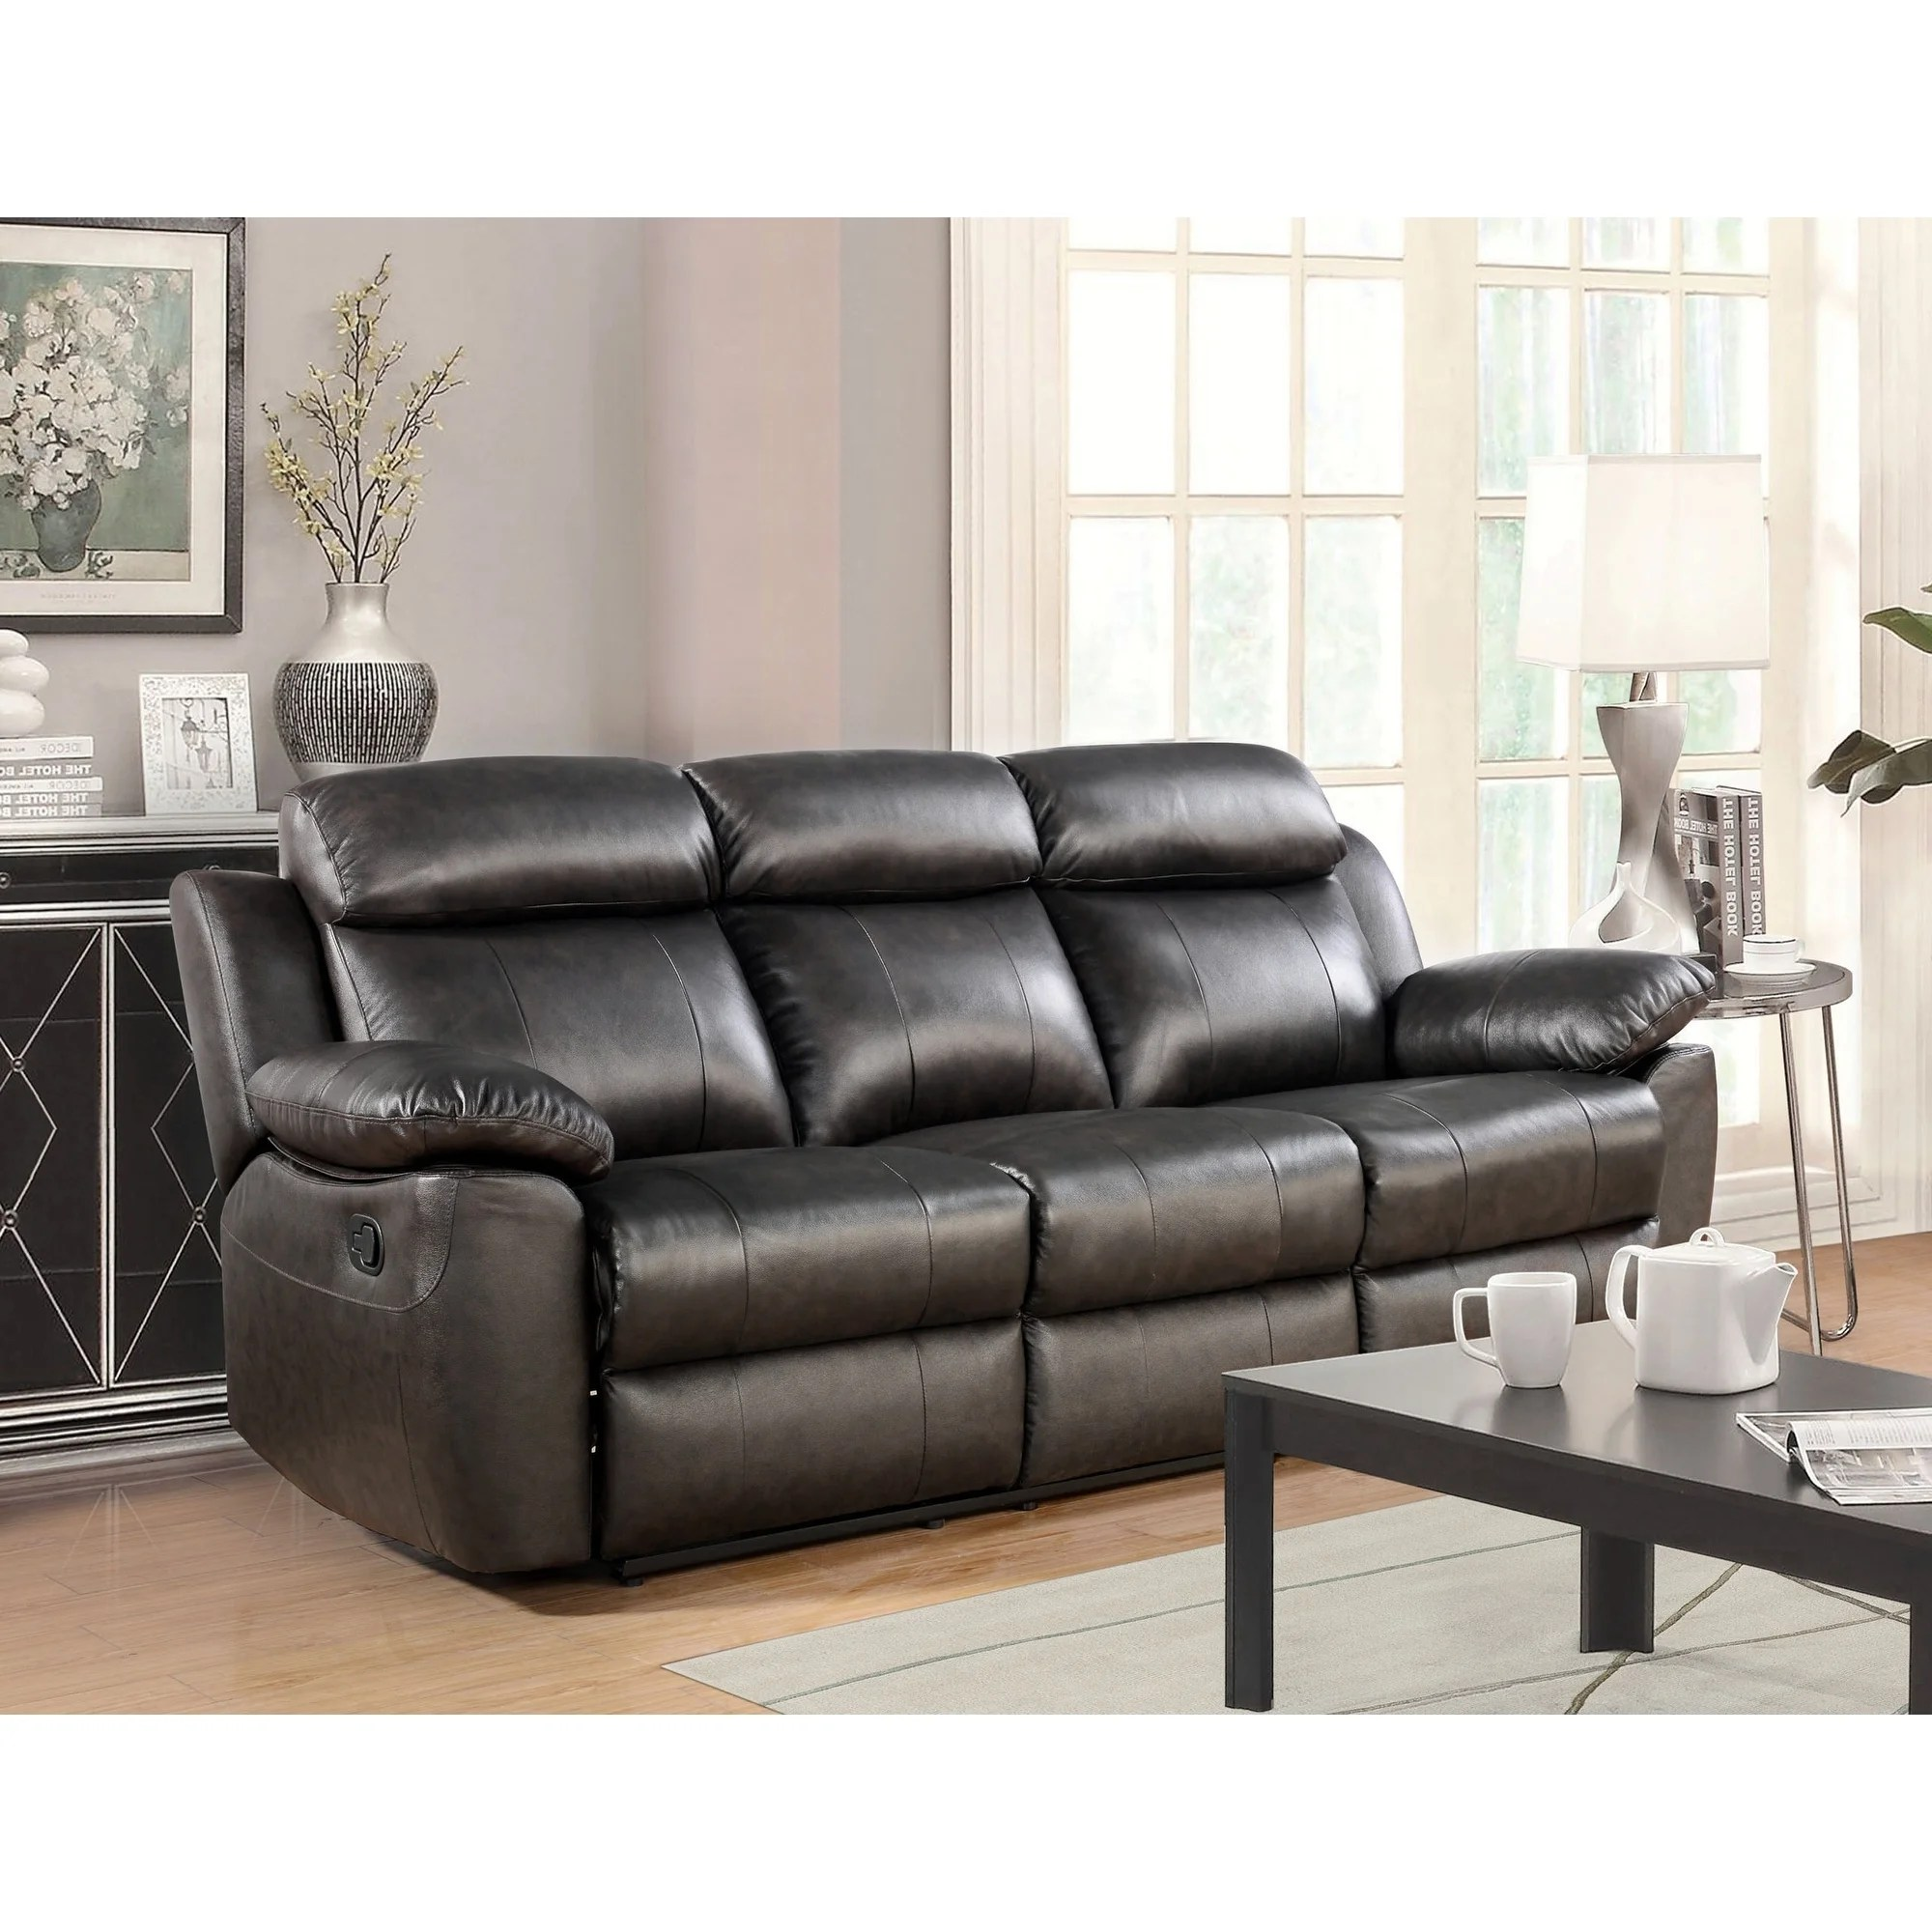 Sofa With Recliner Buy Recliner Sofas Couches Online At Overstock Our Best Living